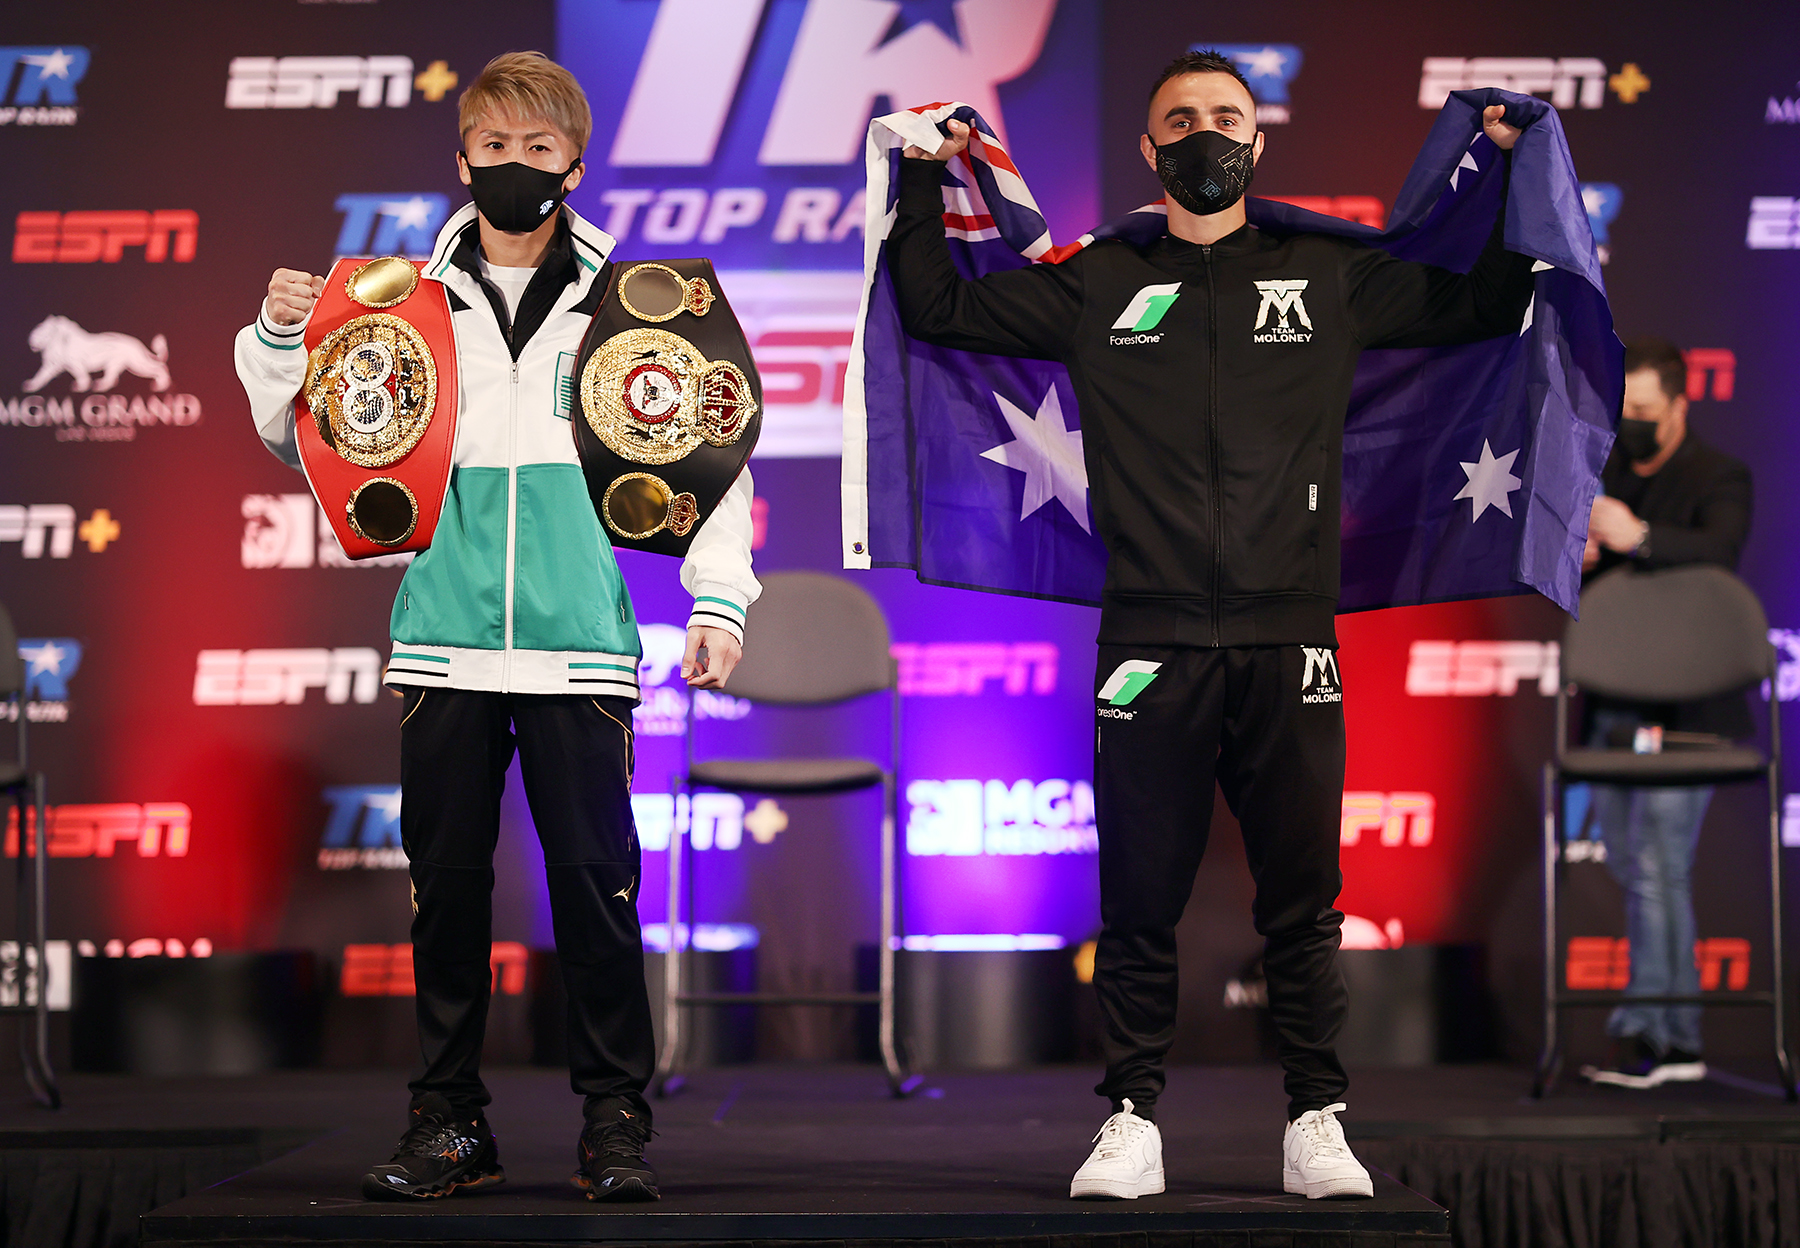 Aussie Jason Moloney goes down in seventh round to unbeaten Naoya Inoue